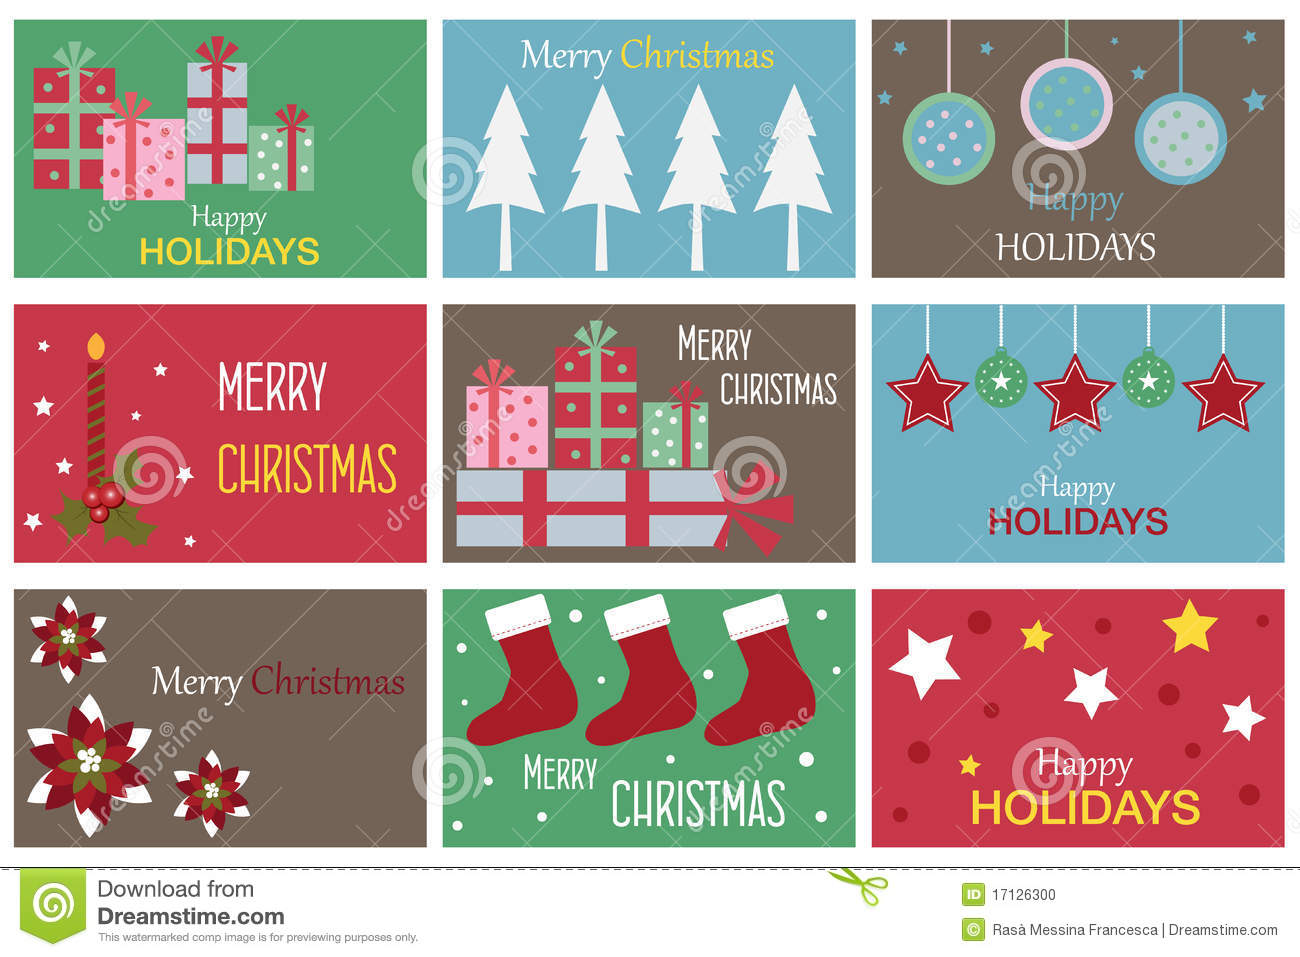 Christmas Gift Cards Illustration 17126300 - Megapixl